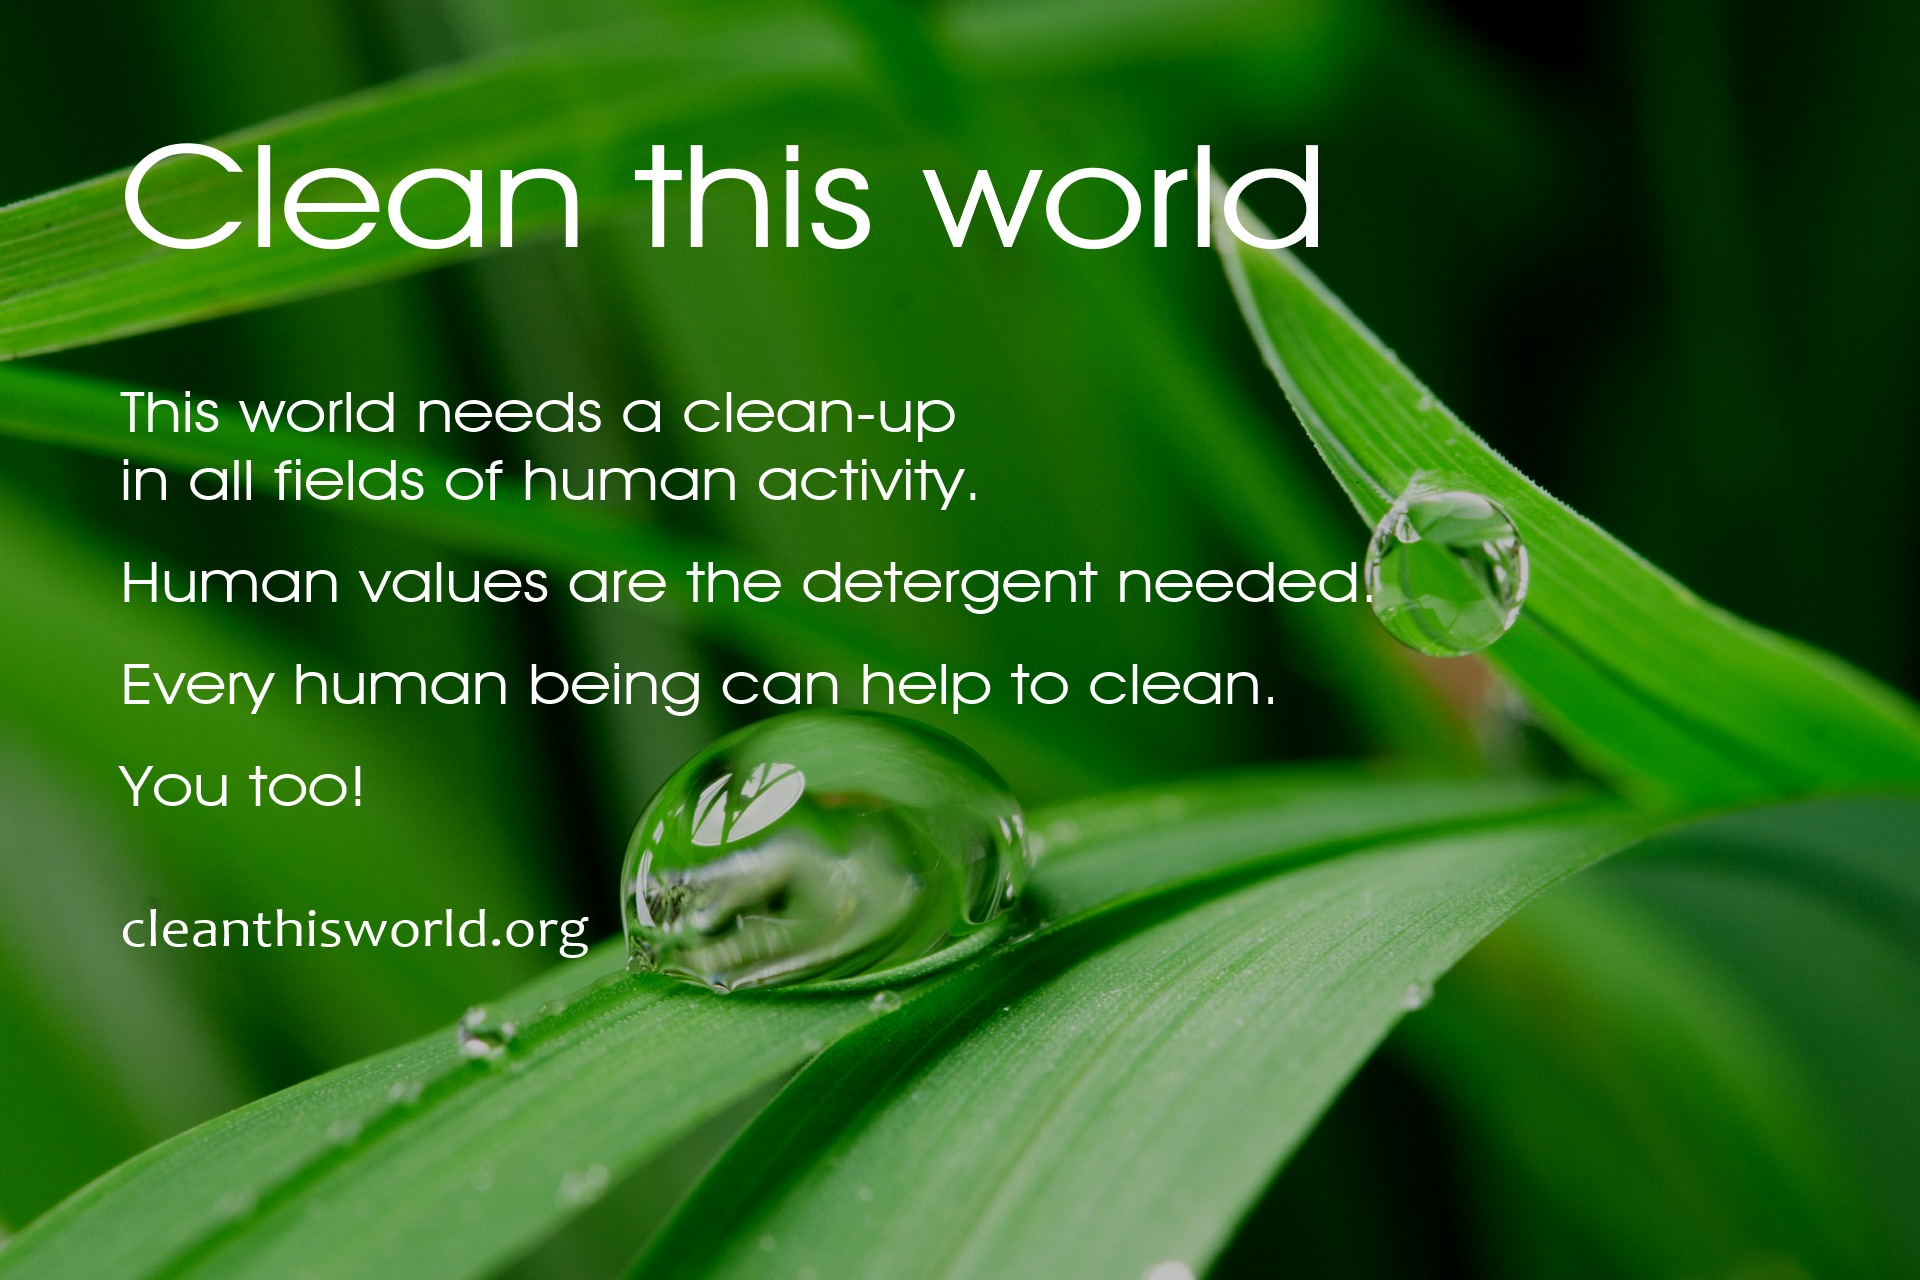 Clean this world